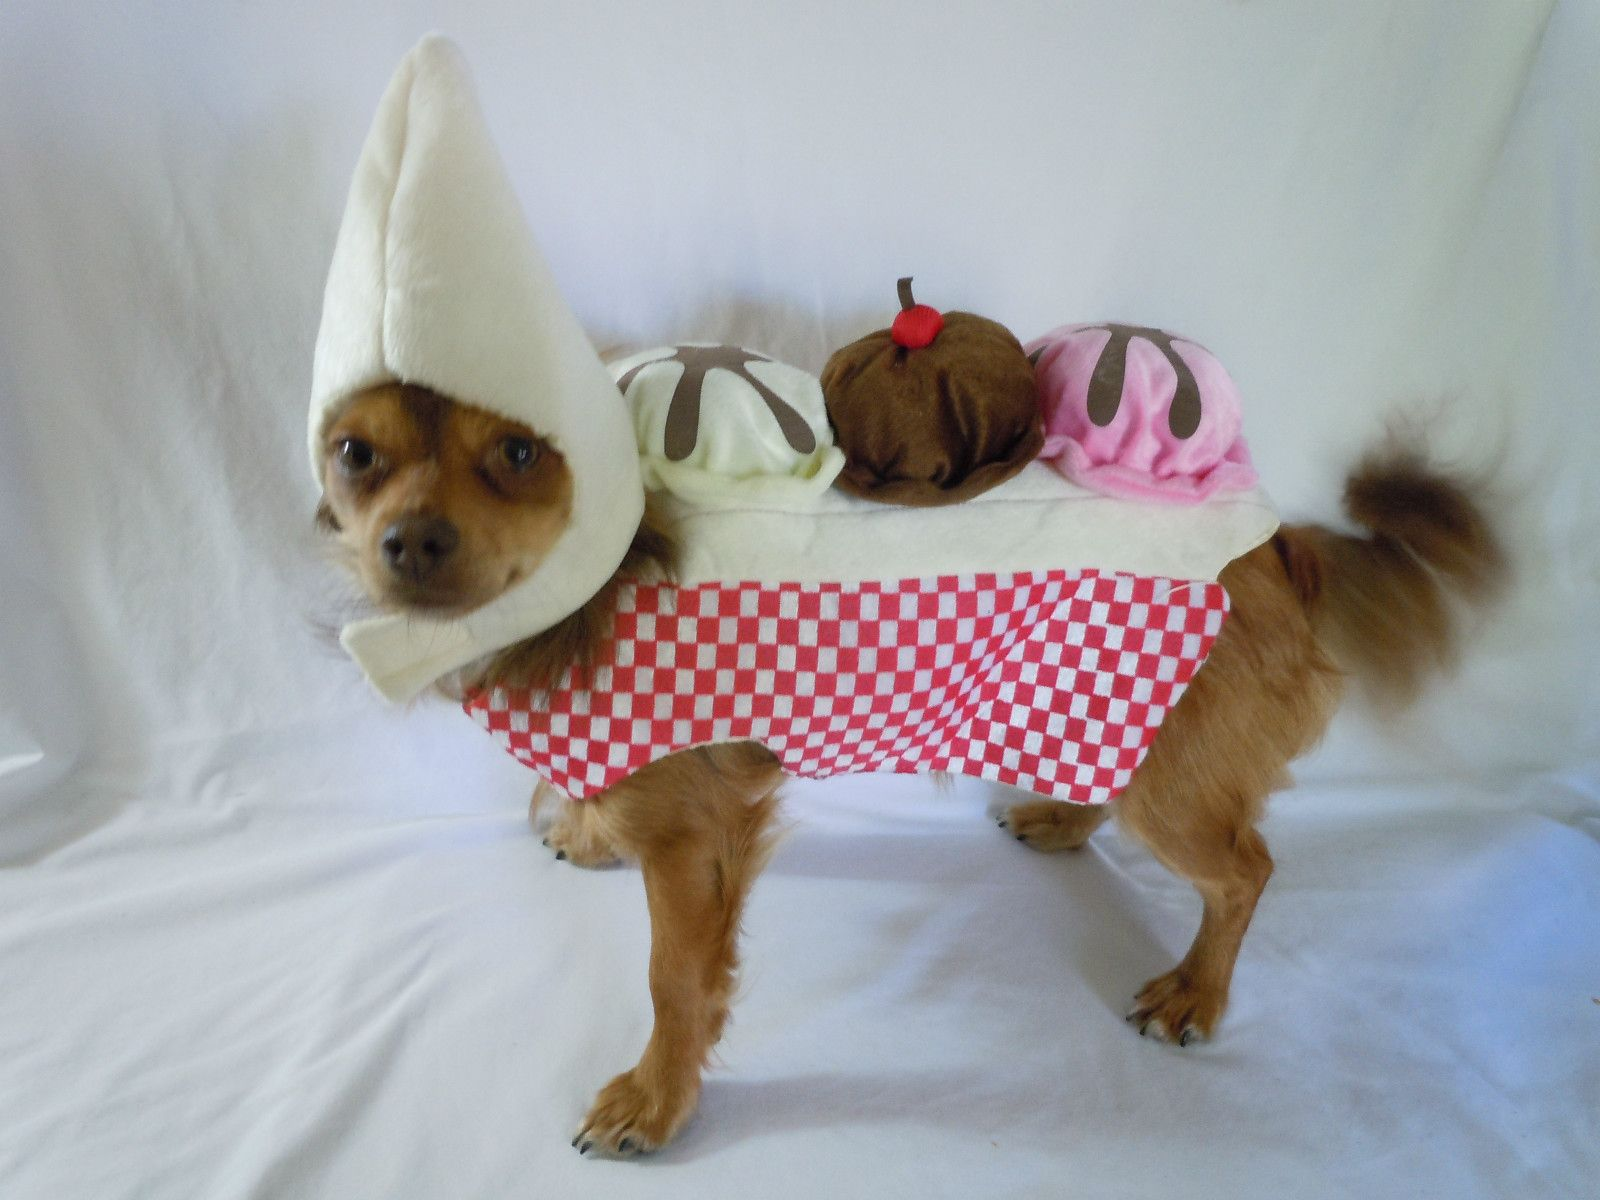 banana costumes for dogs & banana costumes for dogs | McKenzyu0027s Pins | Pinterest | Banana costume